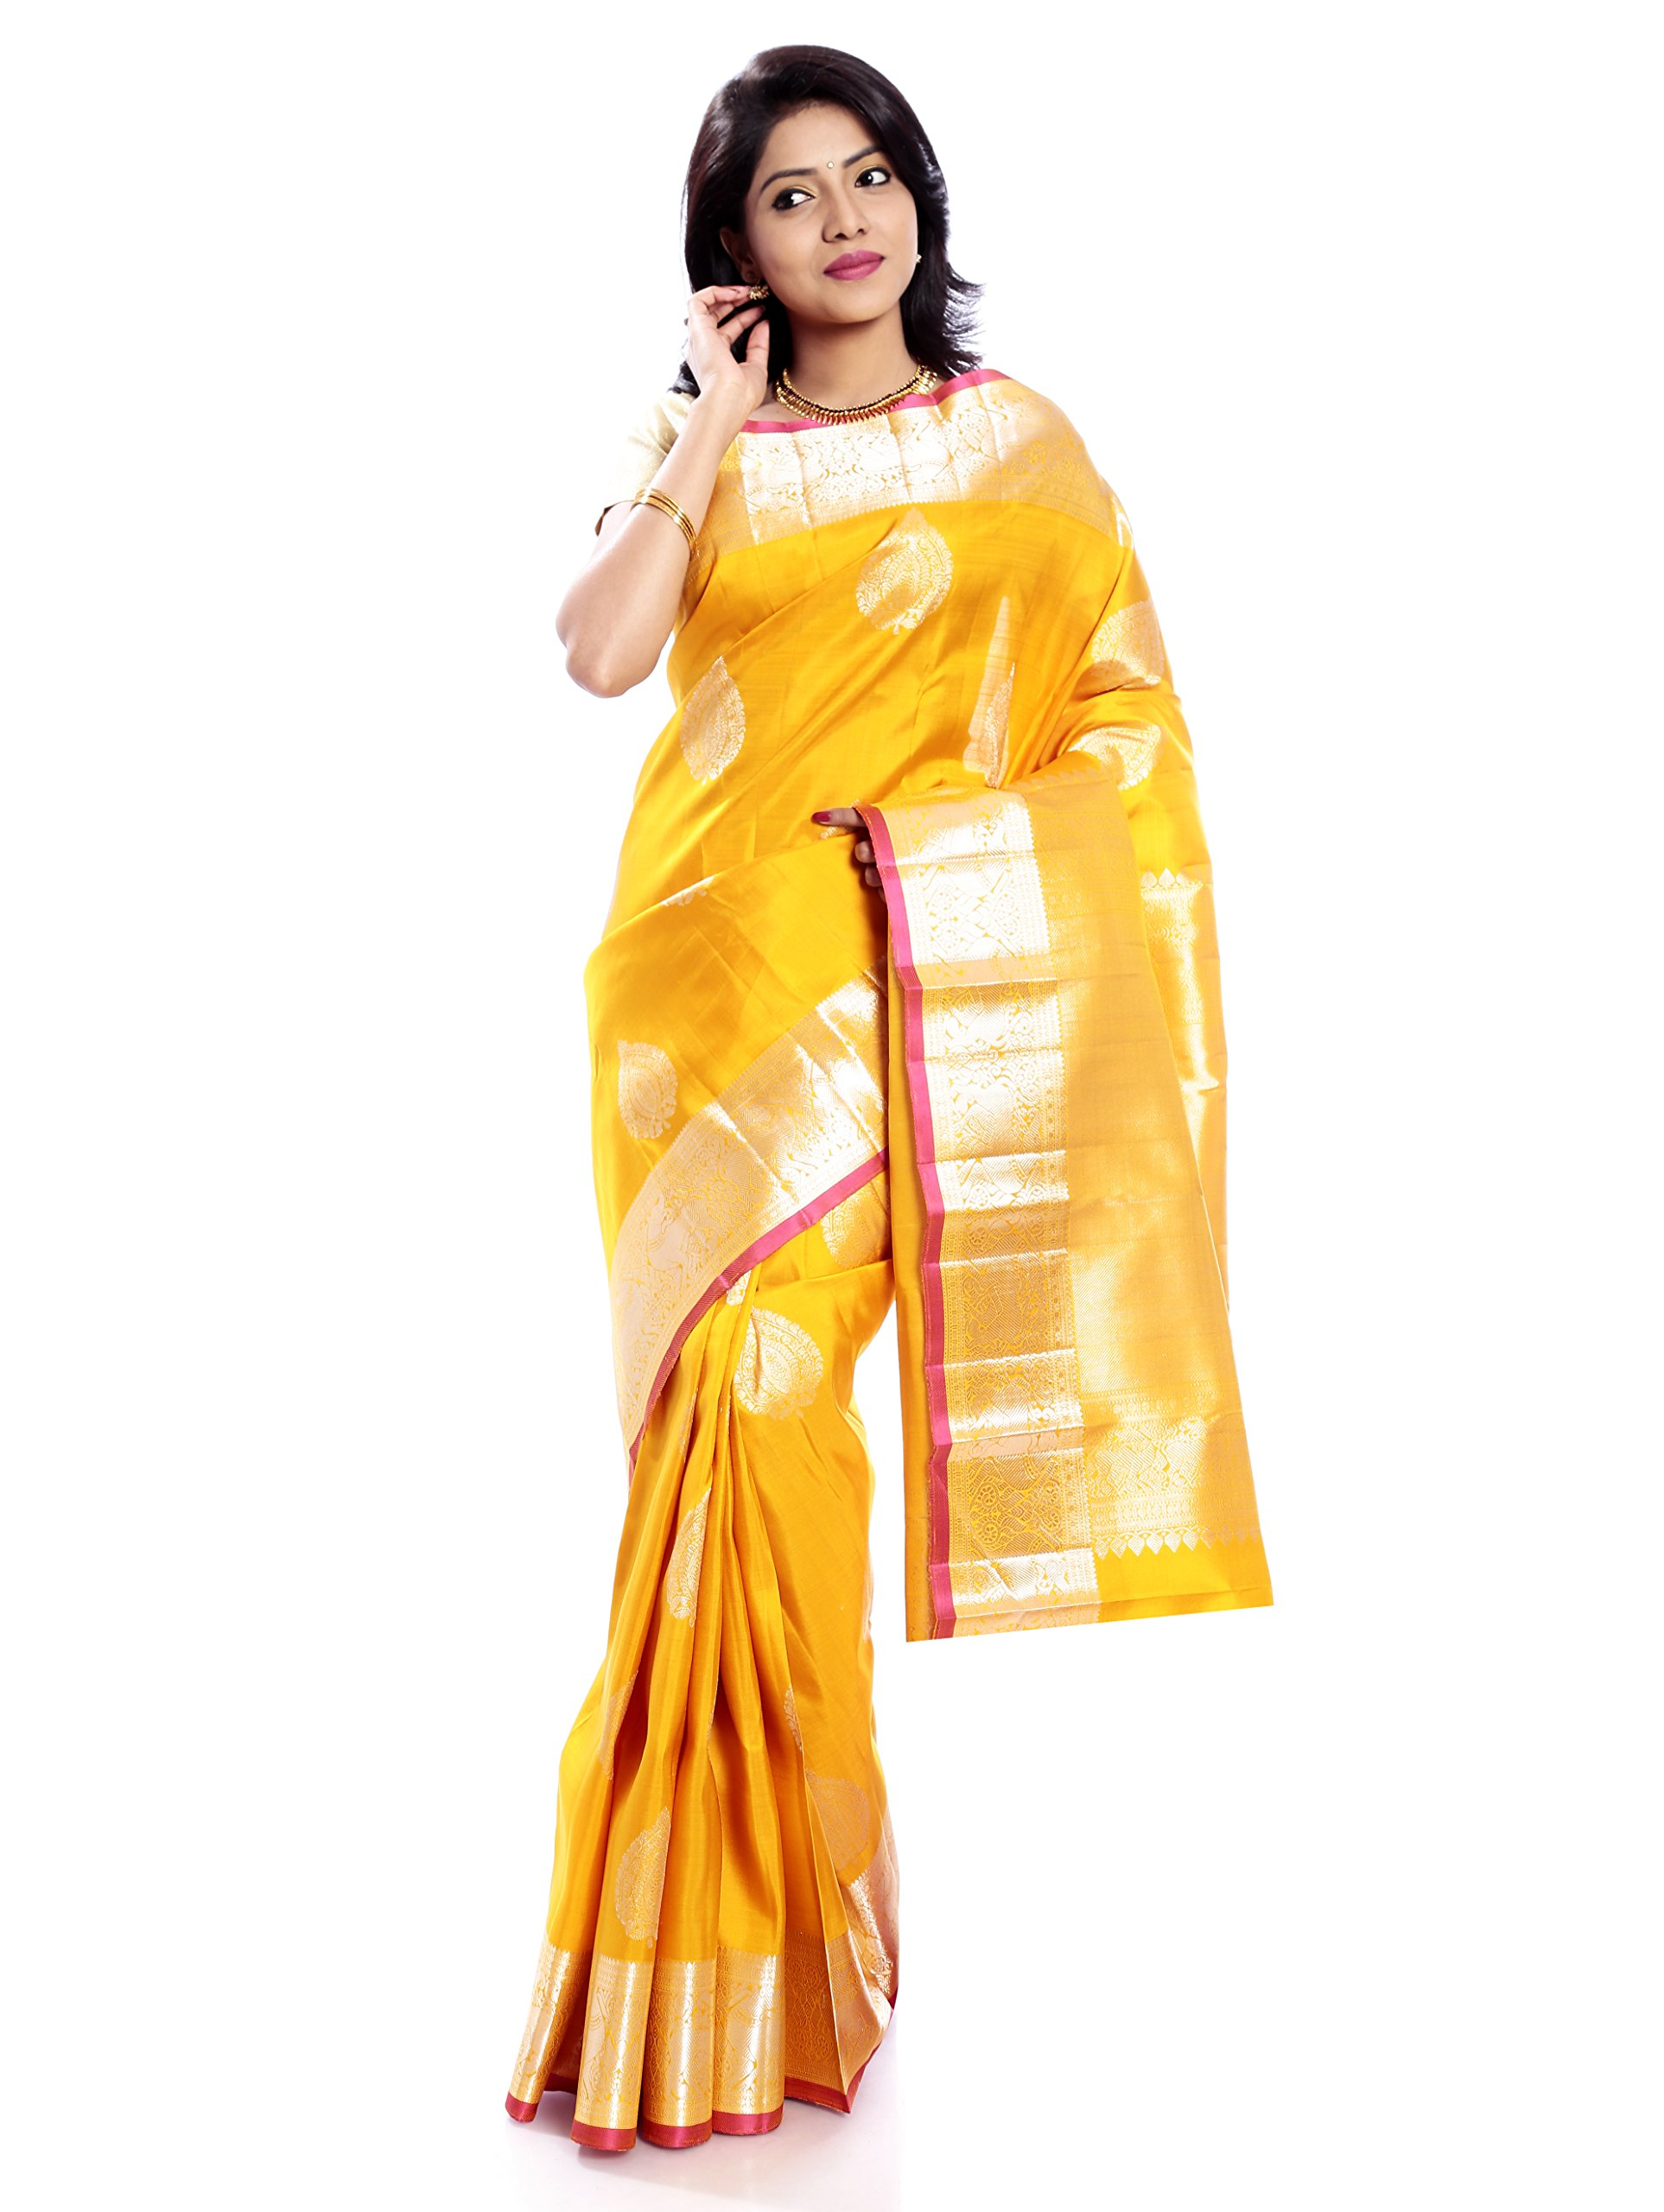 Mandakini — Indian Women's Kanchipuram - Handloom - Pure Zari & Pure Silk Saree (Yellow ) (MK211) by Mandakini (Image #1)